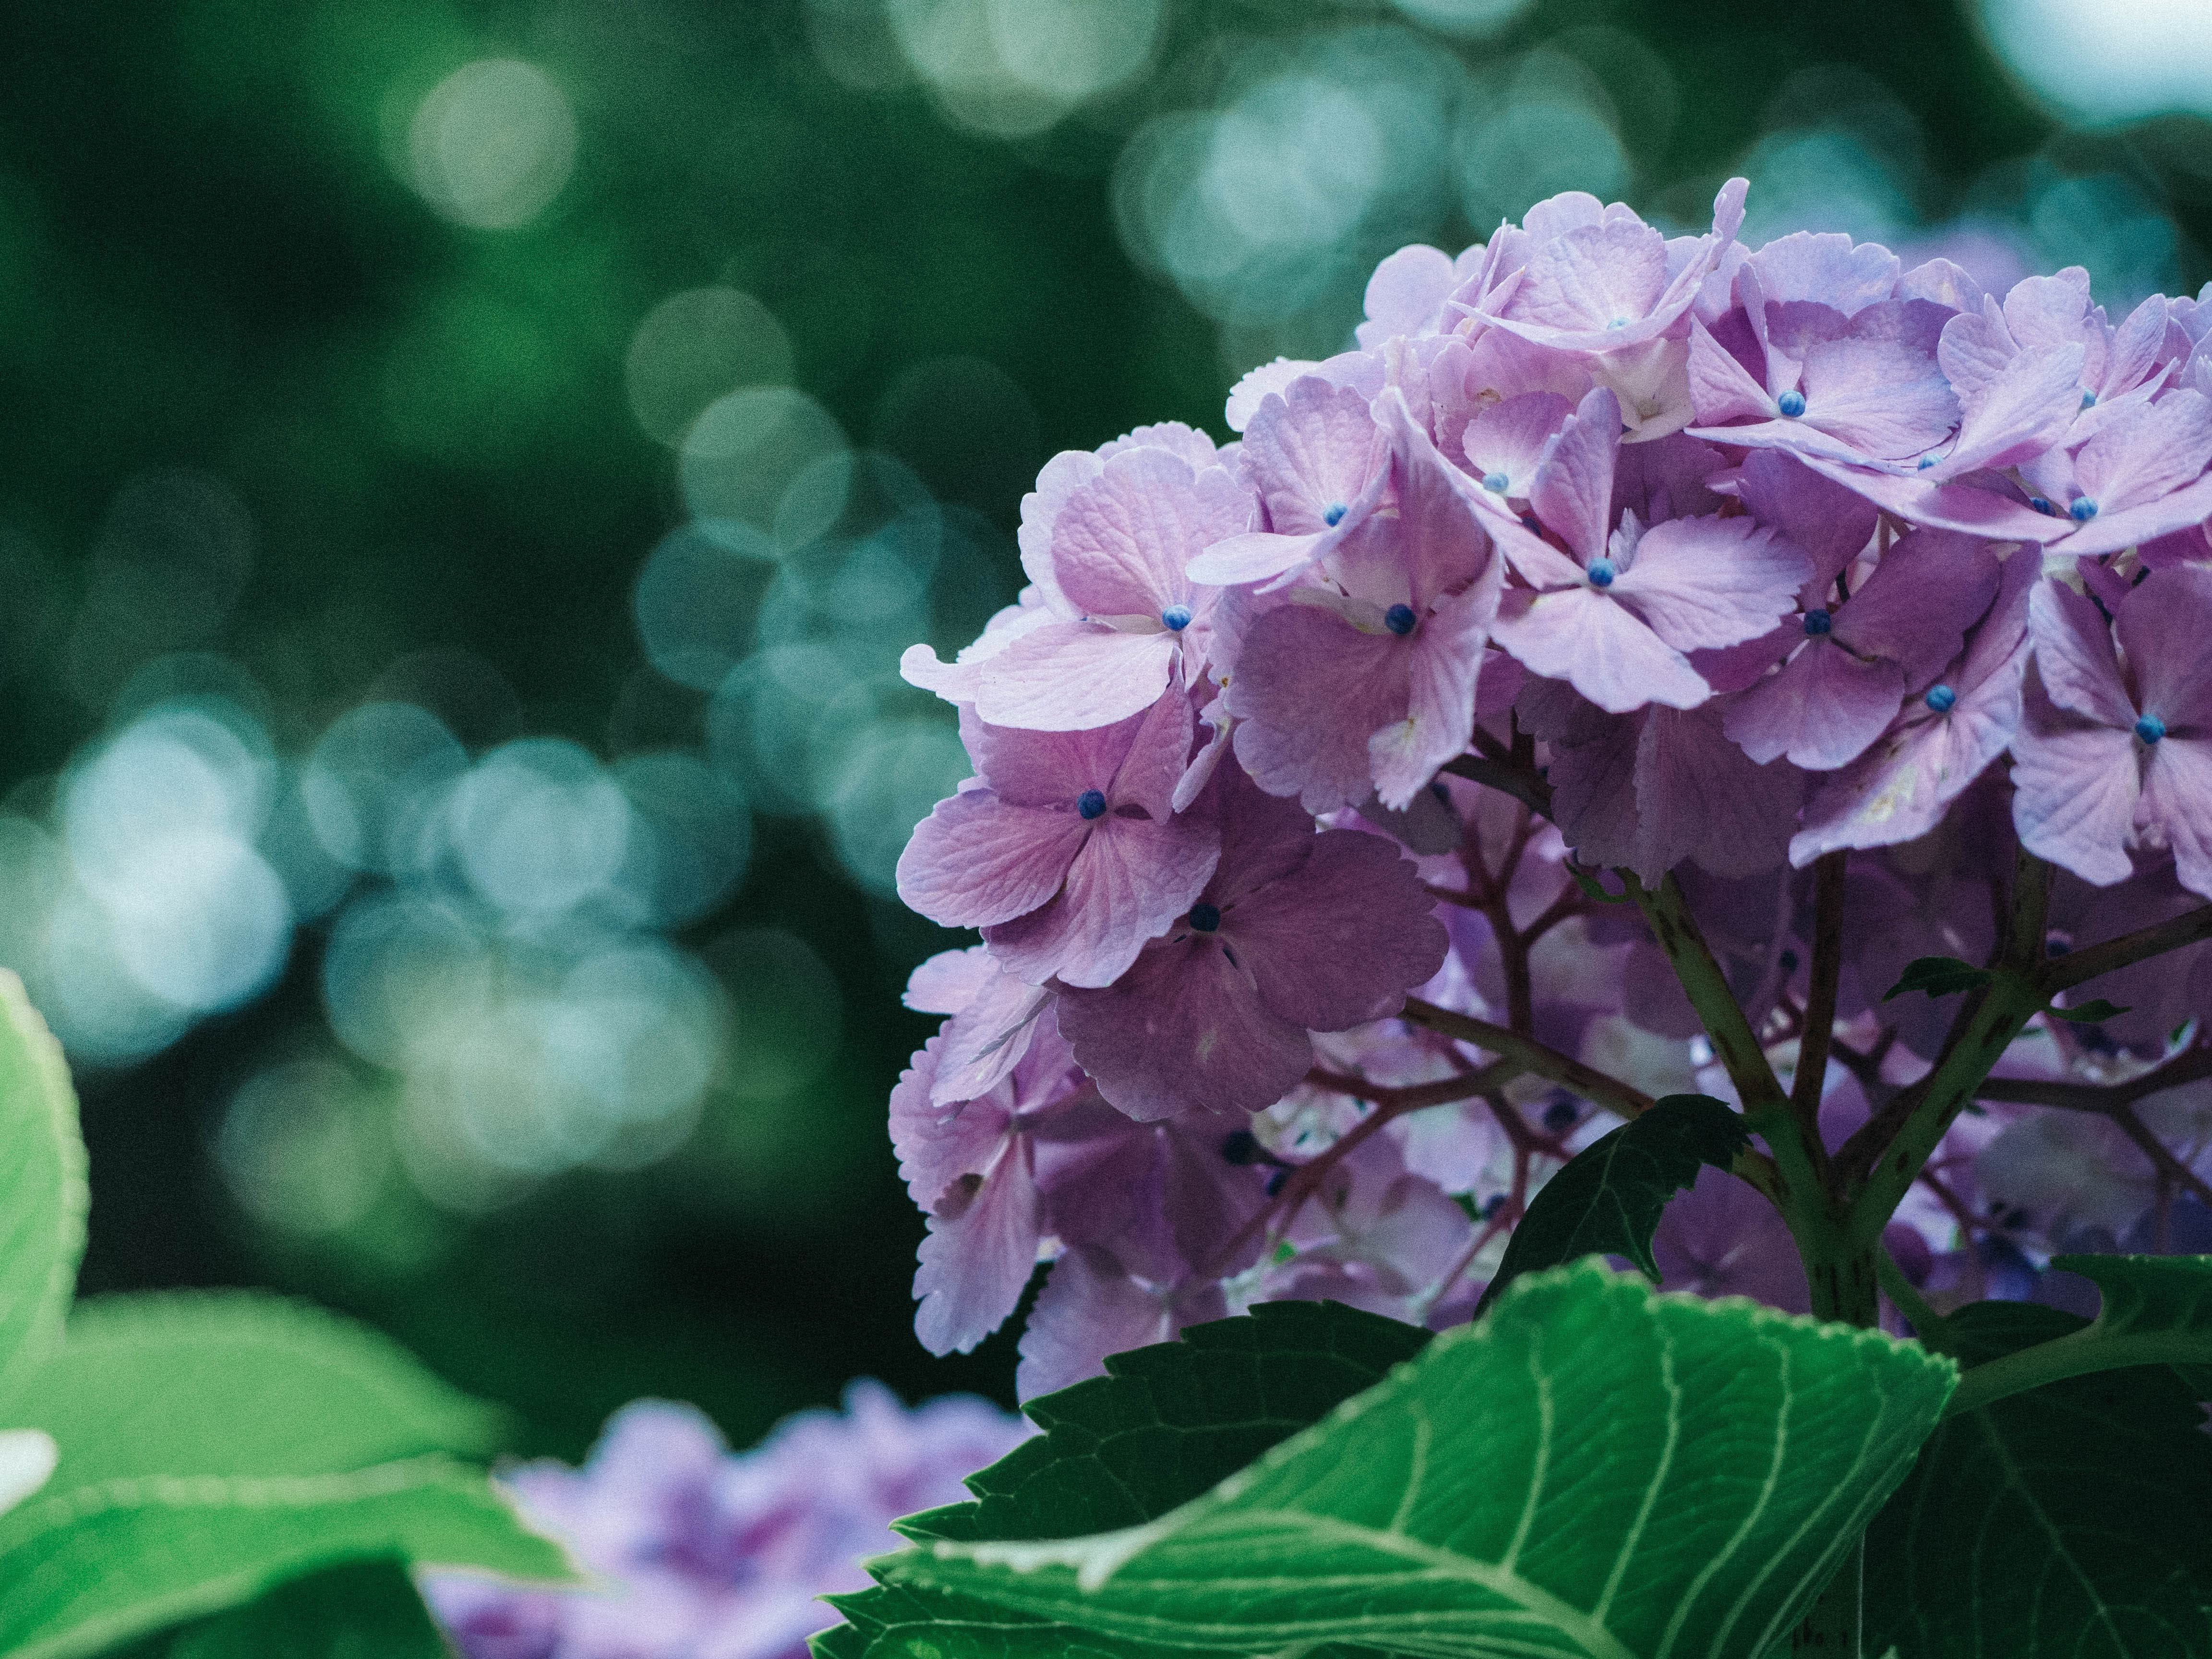 Pink hydrangea with green leaves